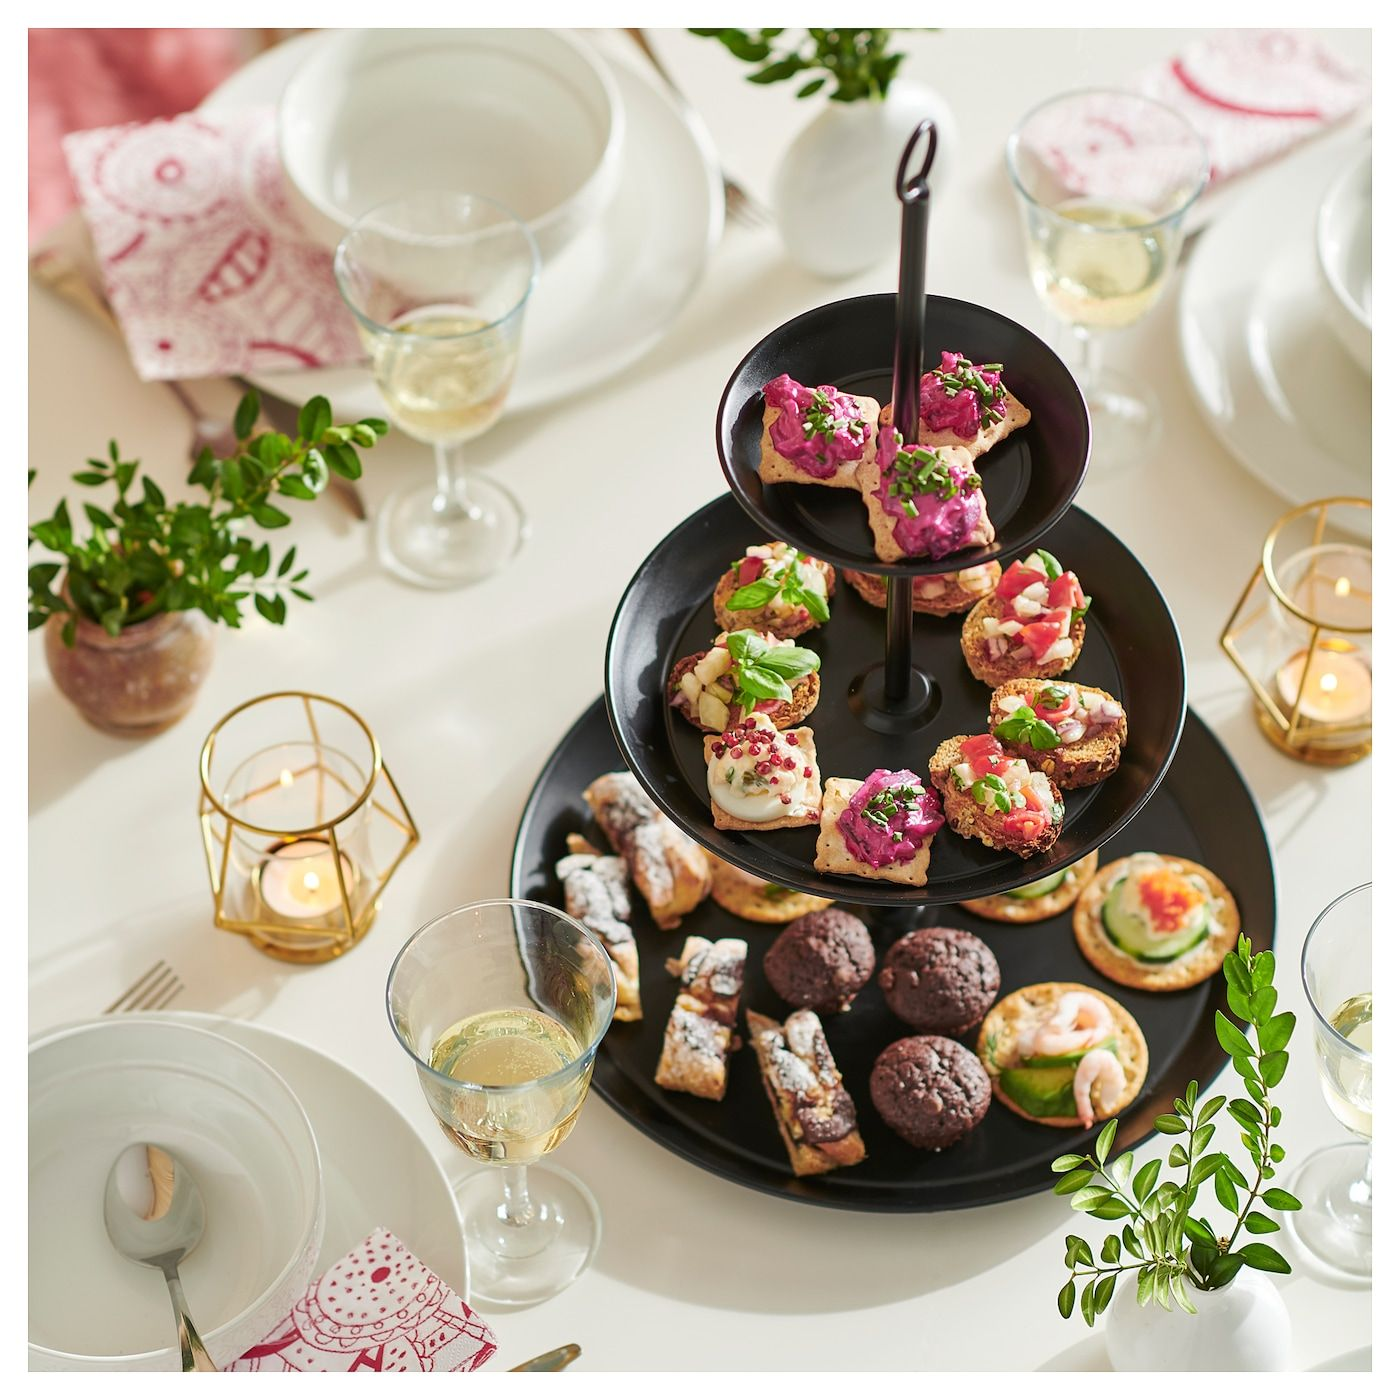 Vinterfest Serving Stand 3 Tiers Black In 2020 Serving Dishes Food Ikea